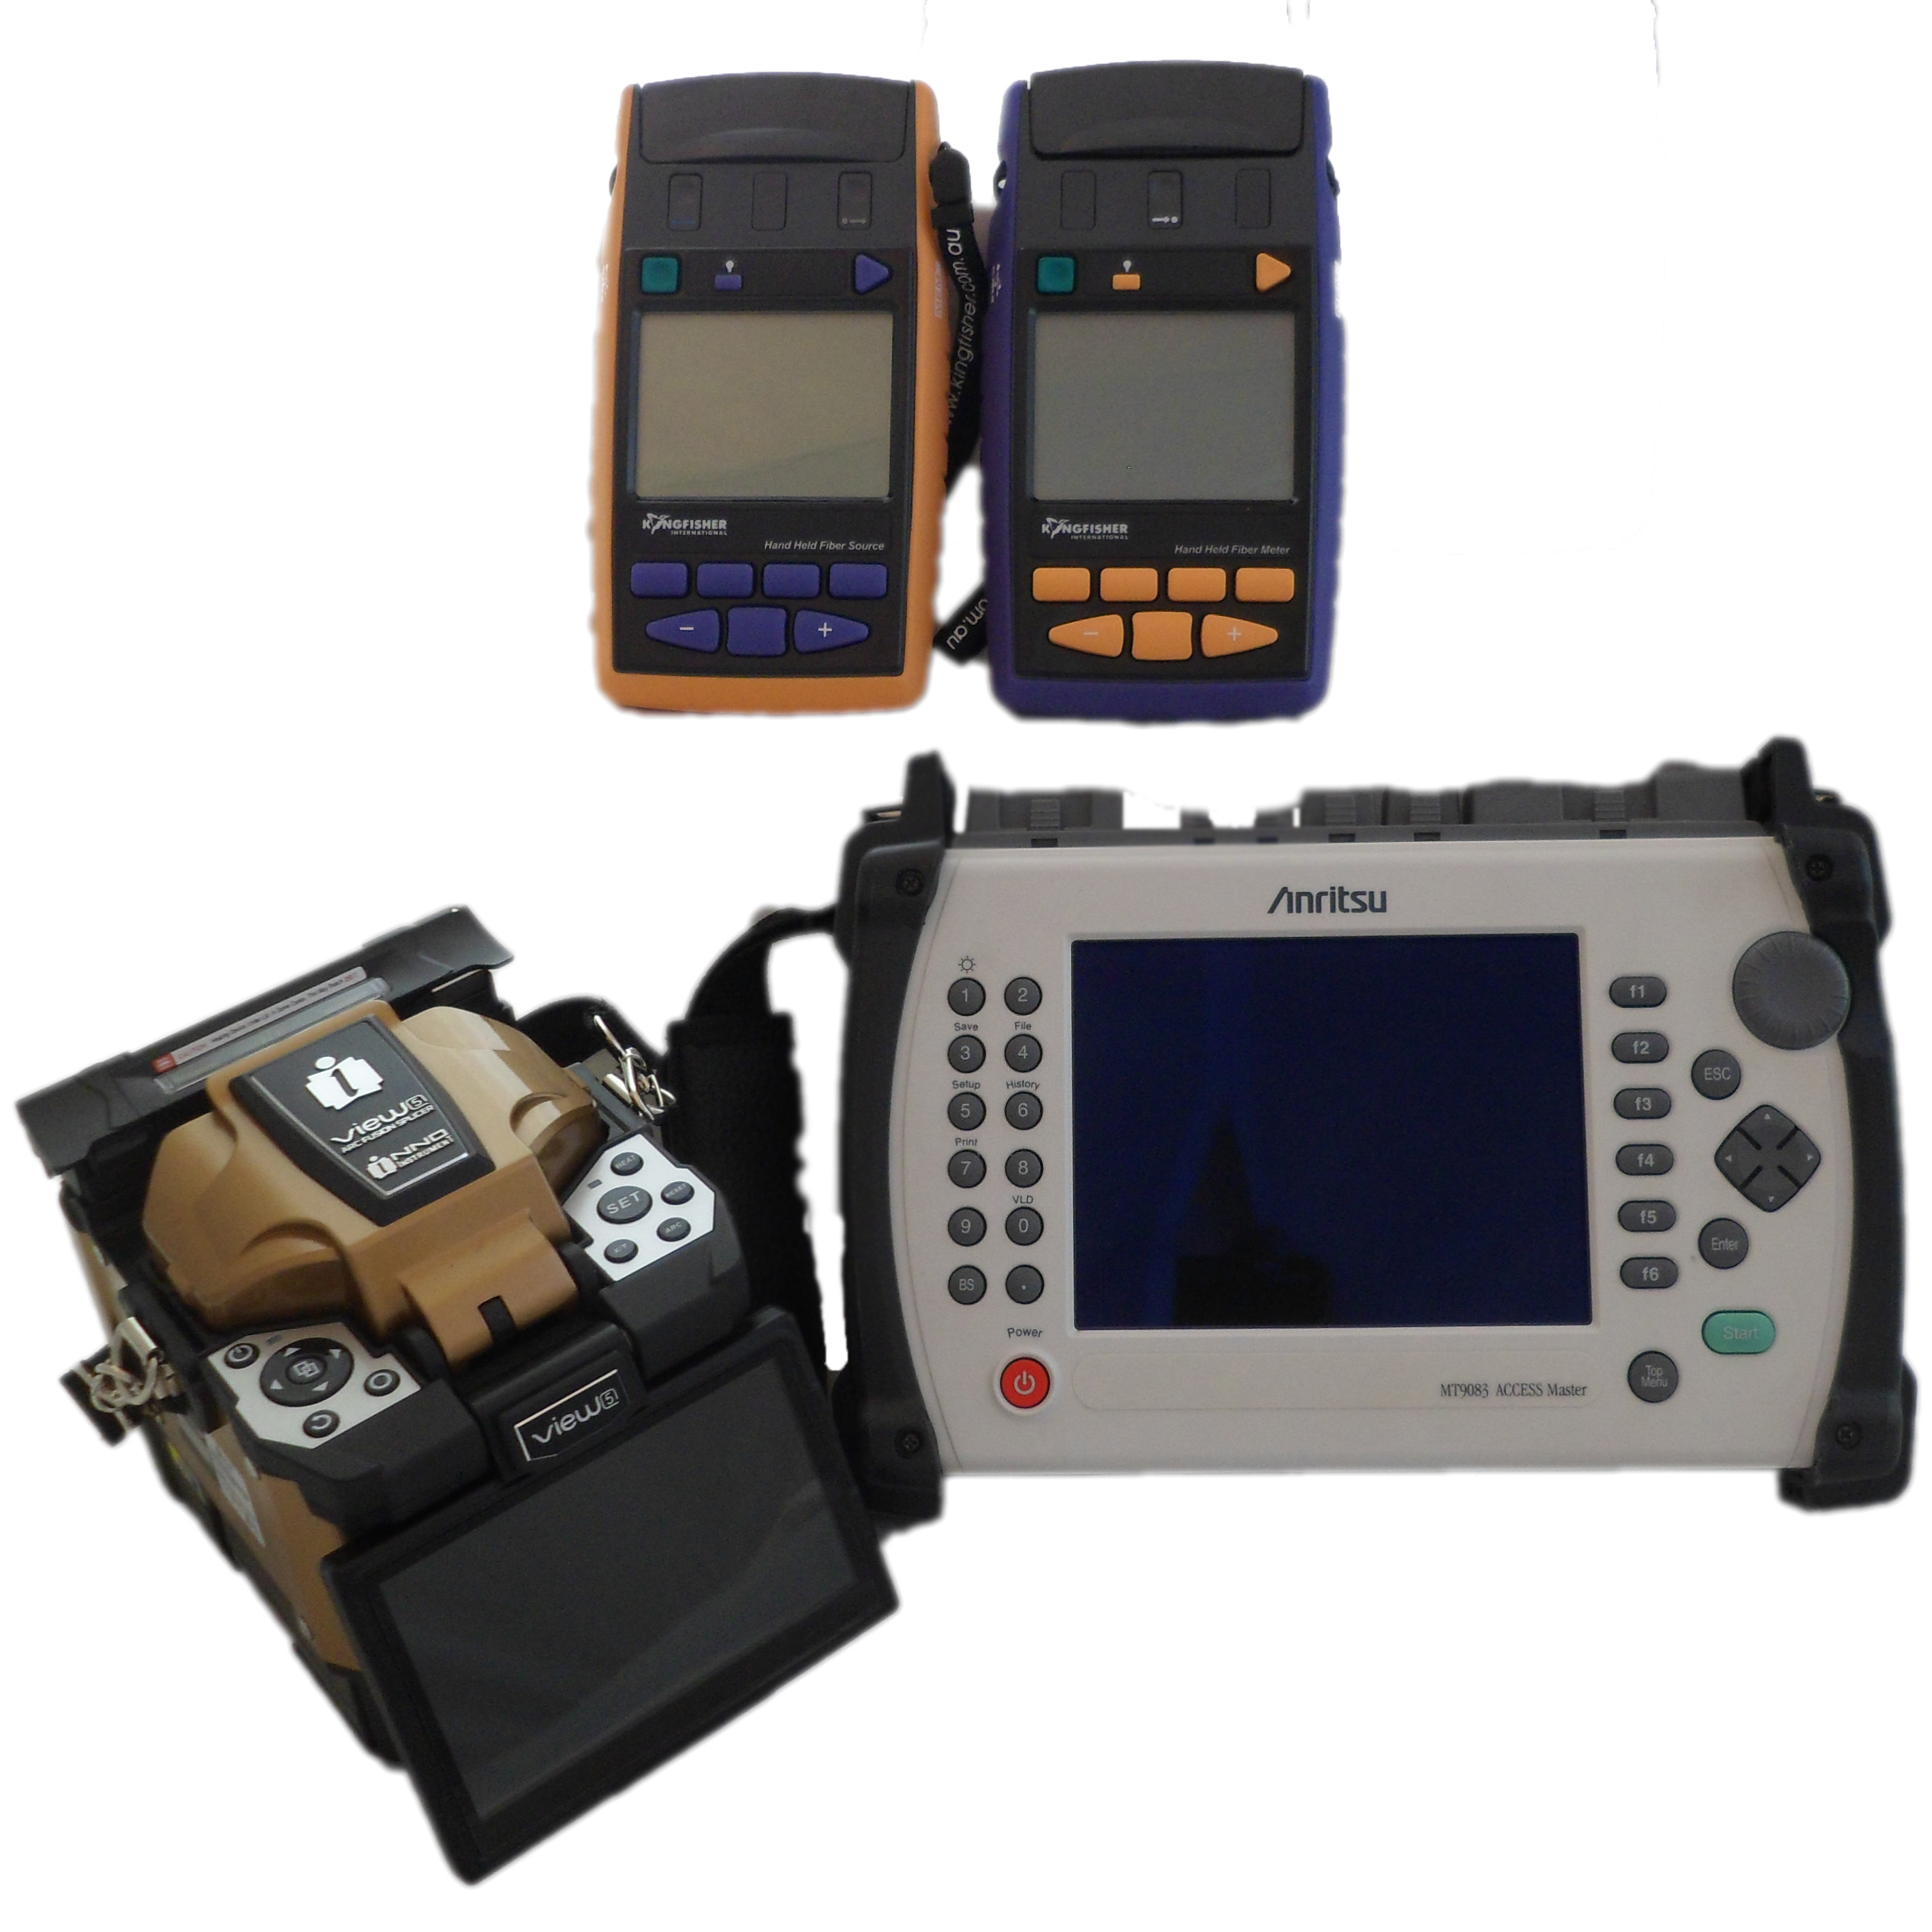 Fiber Optic Splicing and Testing Package Deal